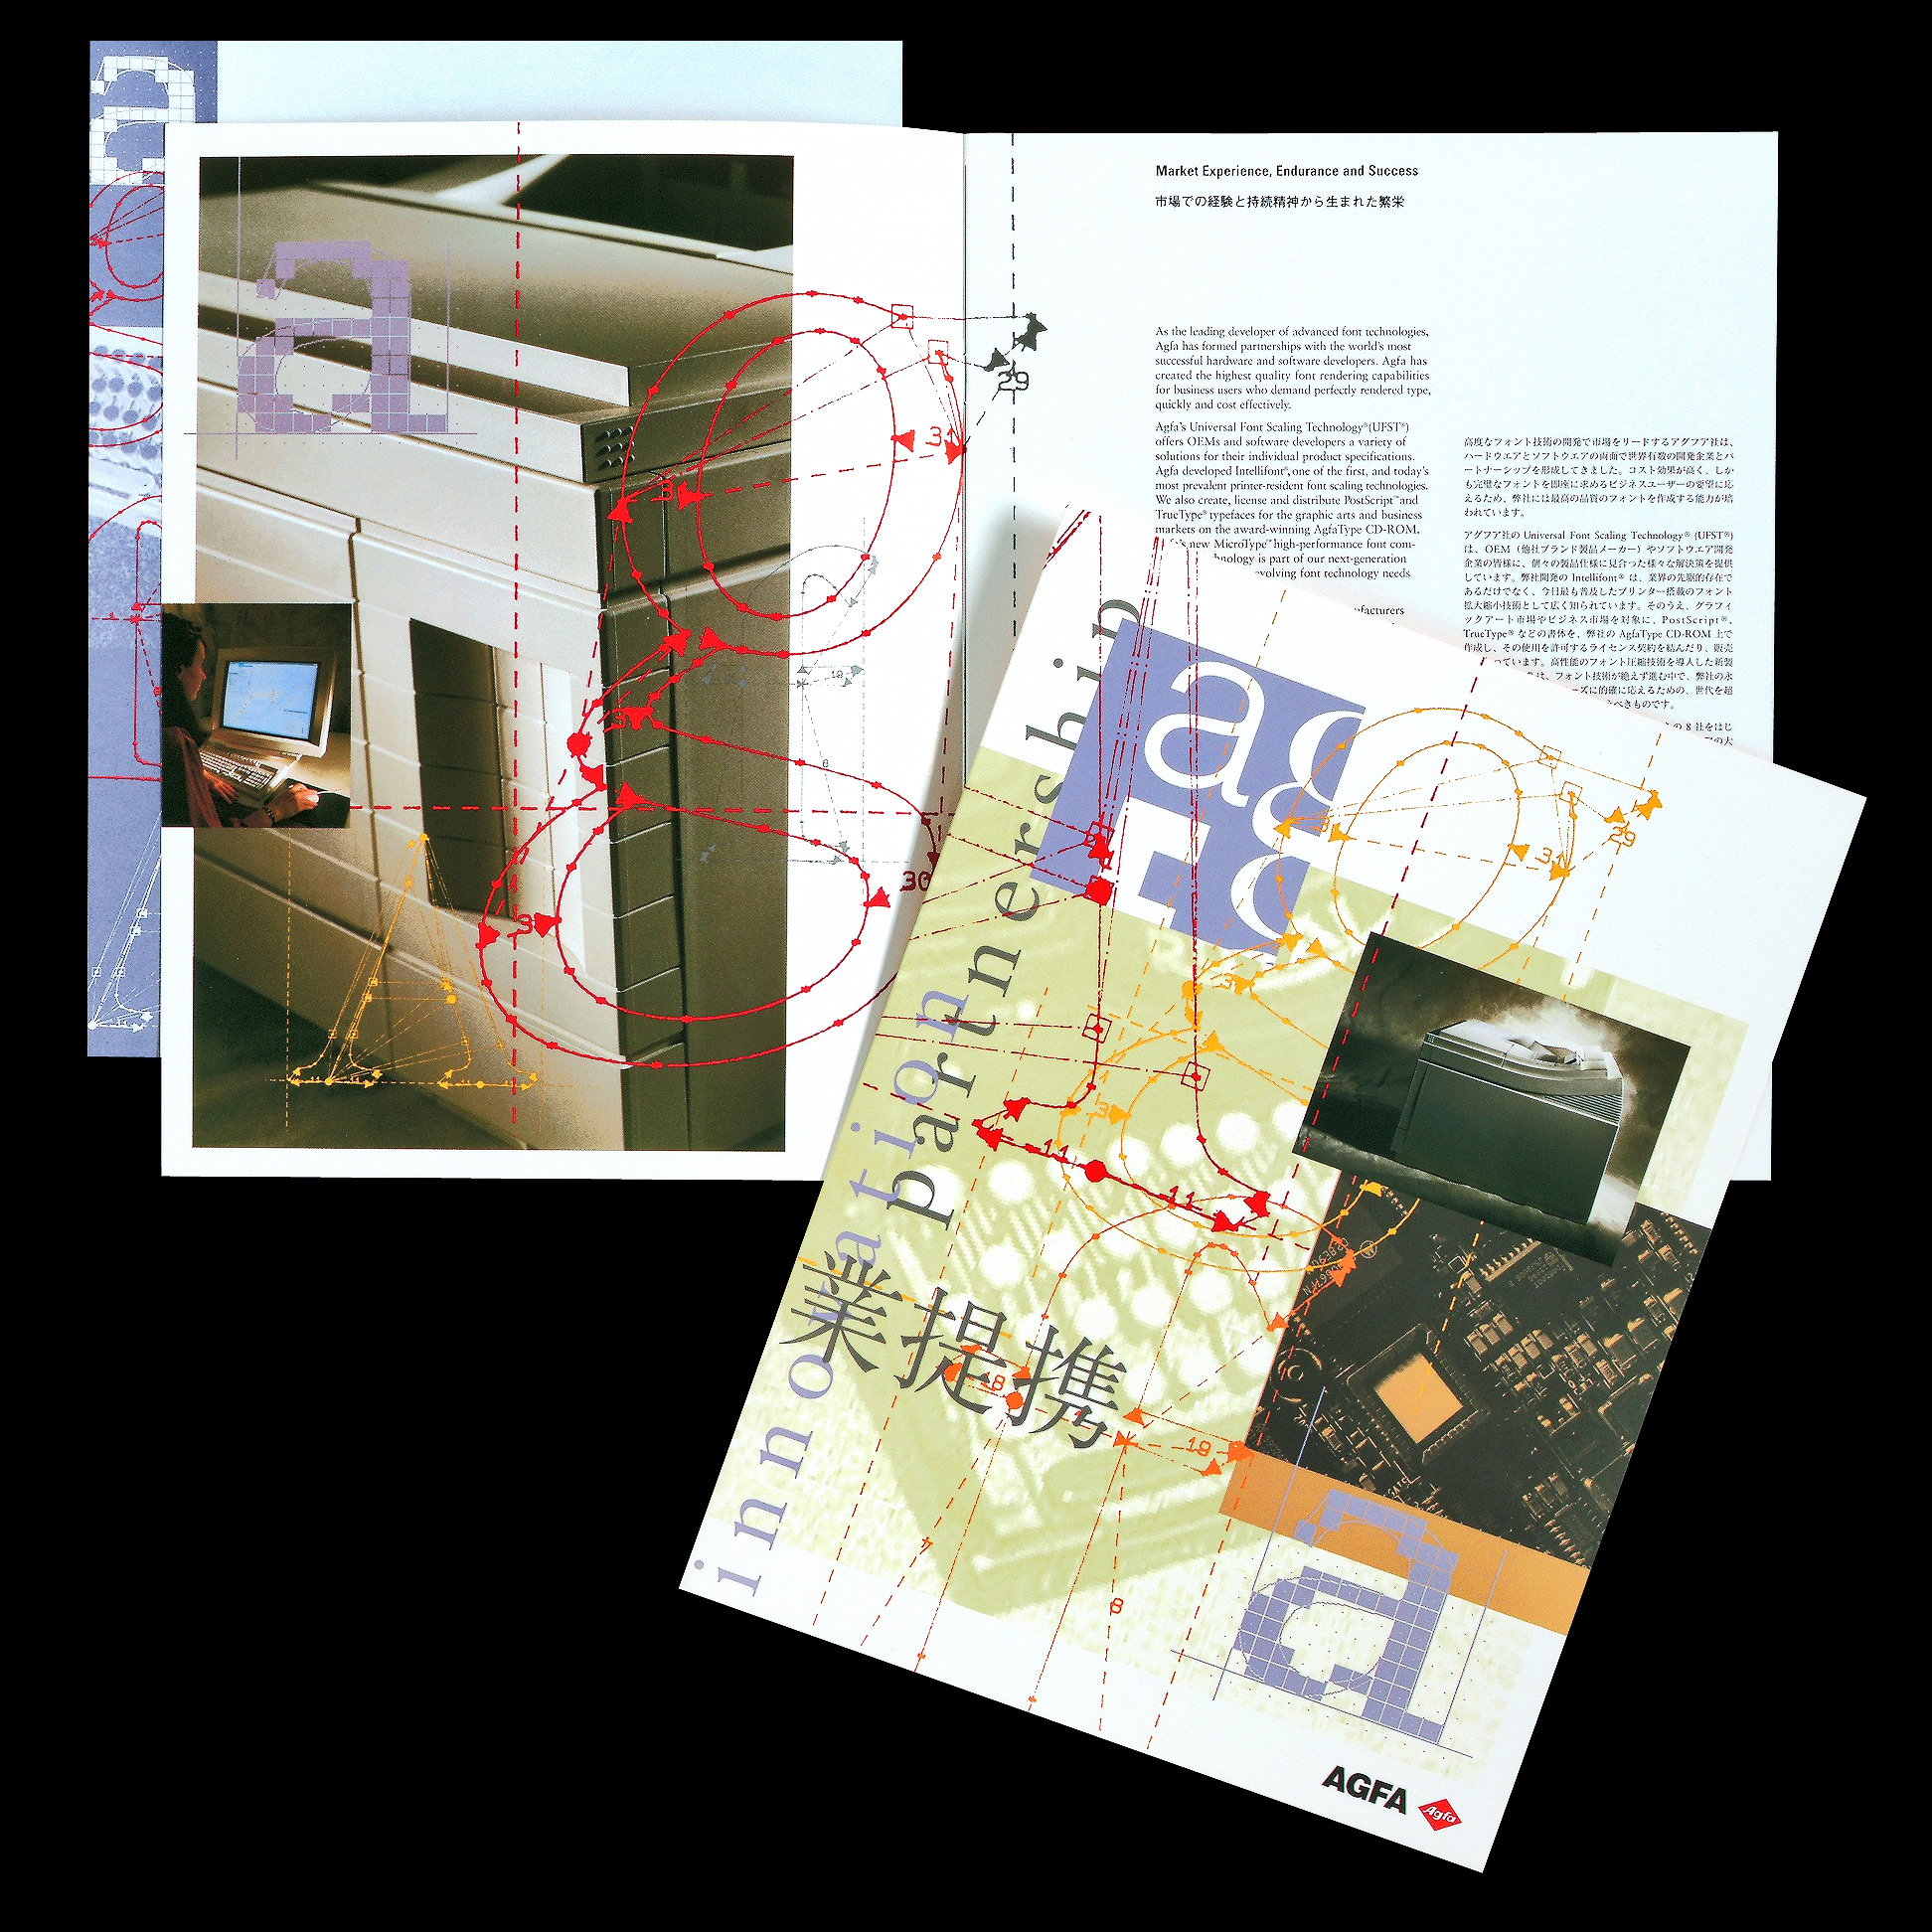 Brochure designed for English and Japanese printer manufacturing companies.